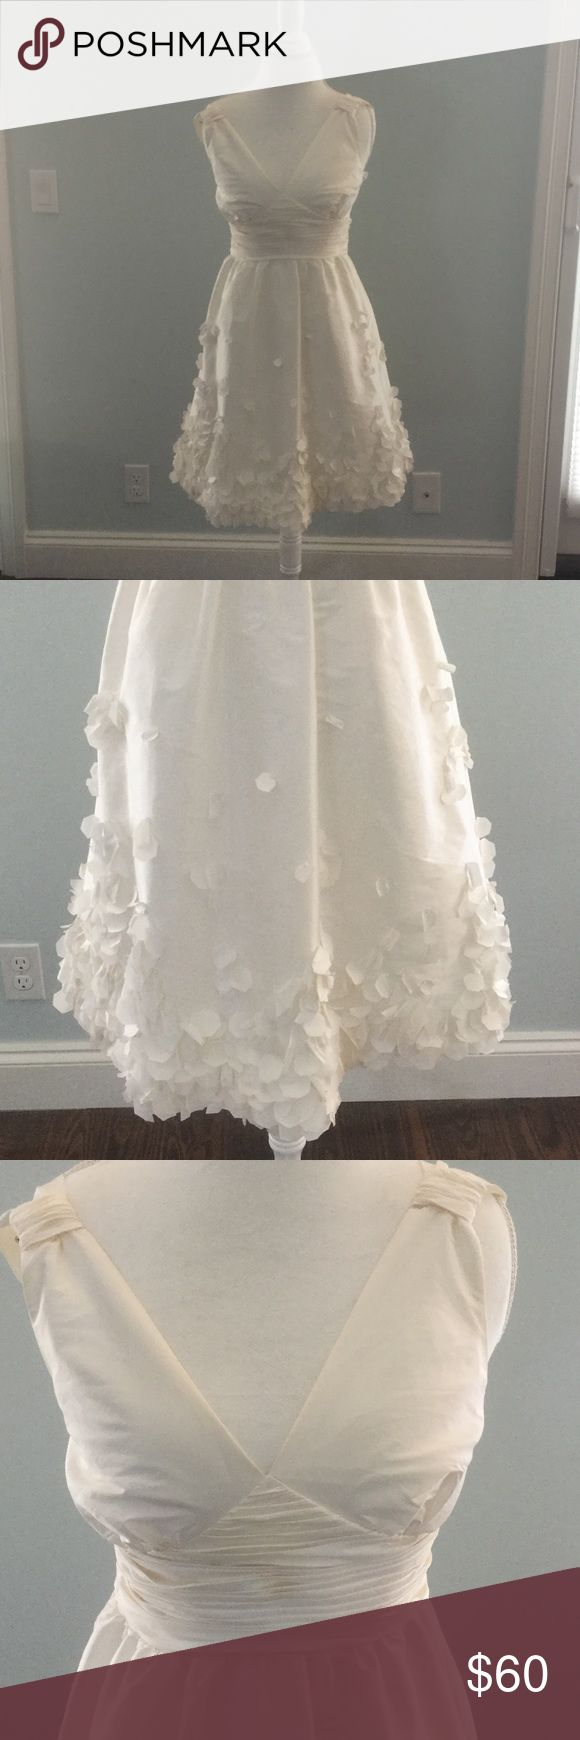 Calvin Klein dress Ivory with soft petals and tiny pearls sewn around the skirt area. Very soft and light. Only worn once on Easter. Calvin Klein Dresses Midi